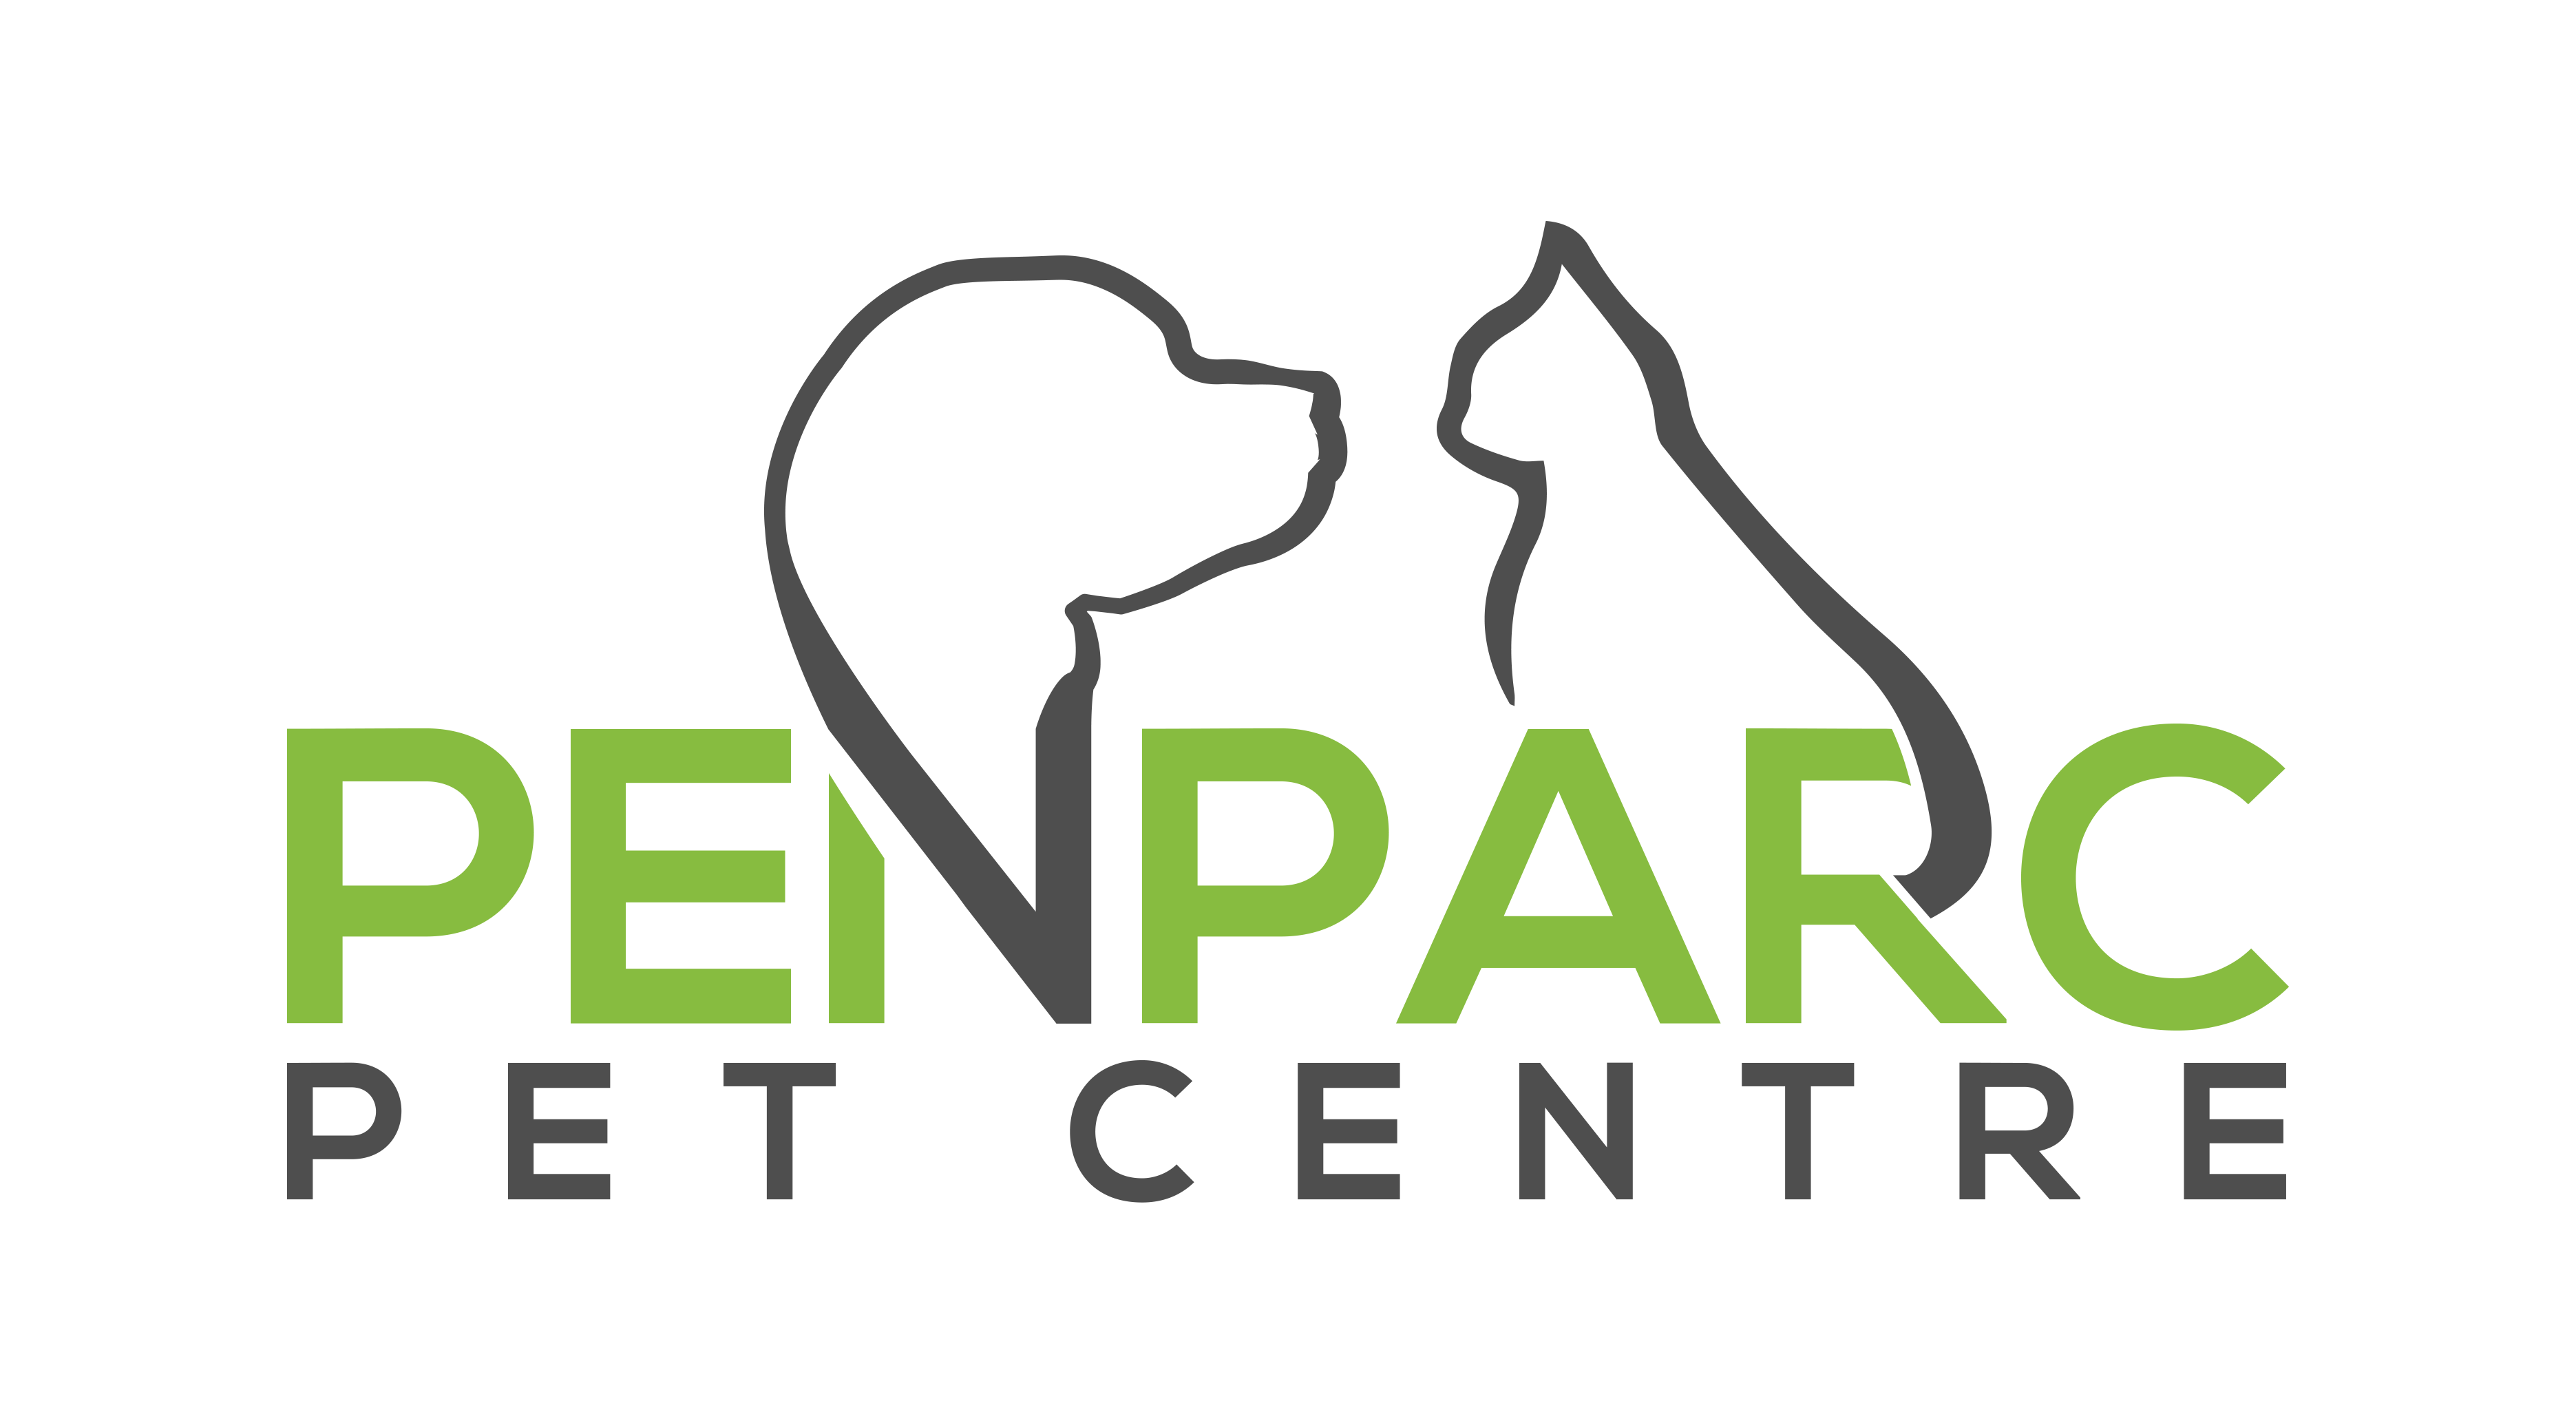 Penparc Pet Centre